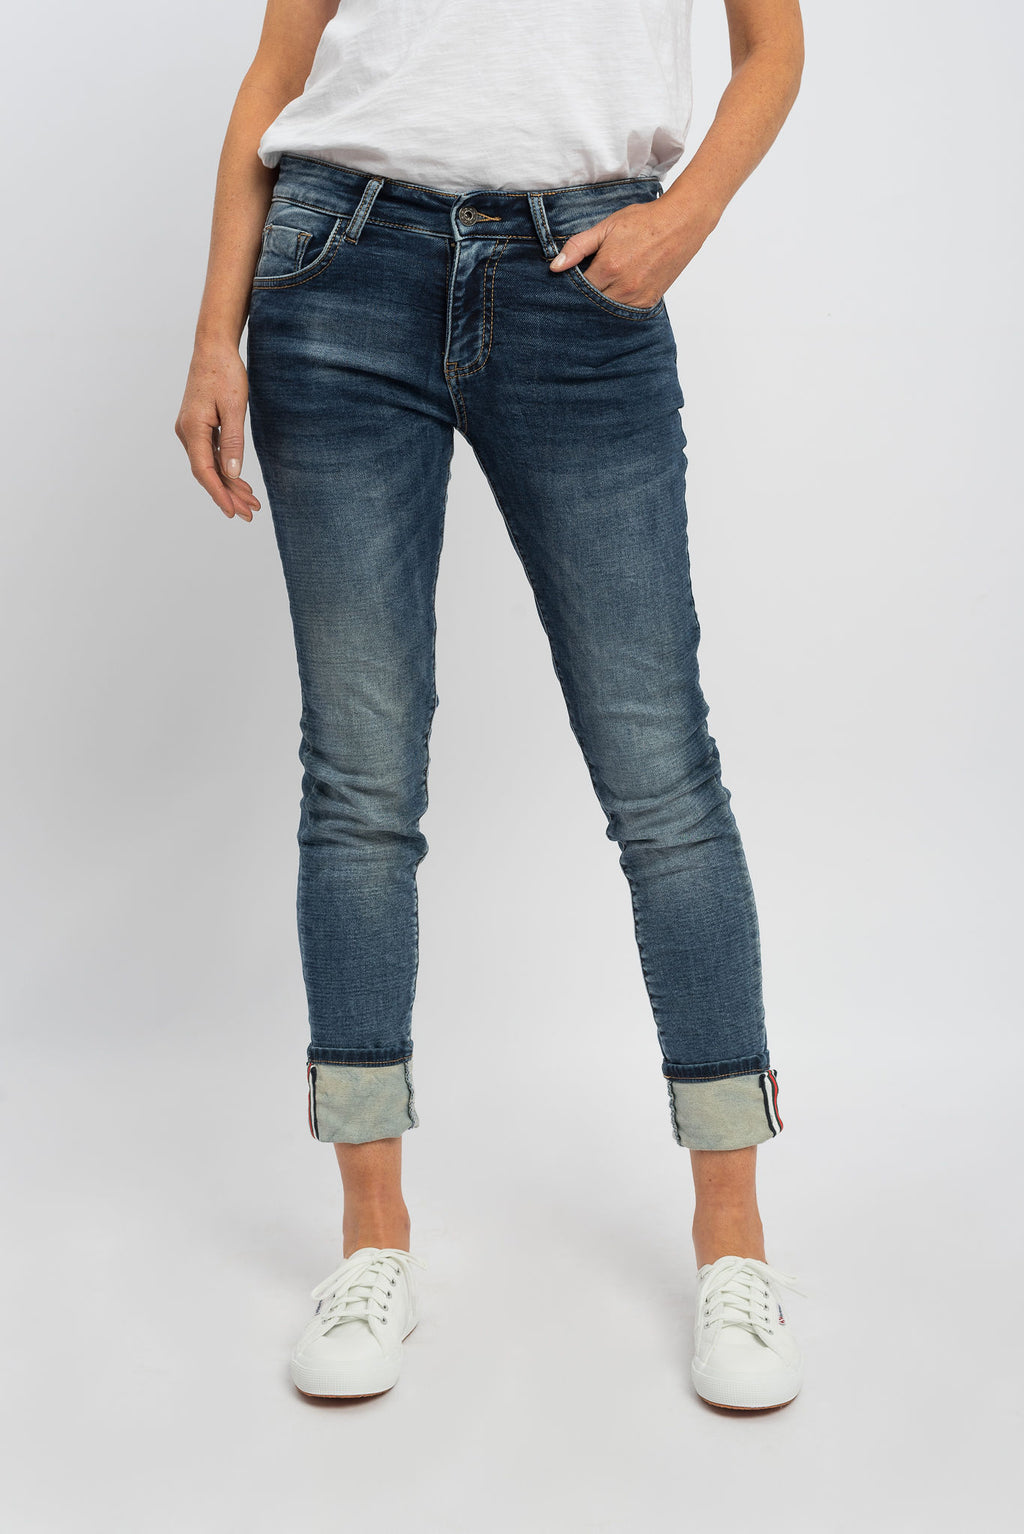 Italian Star Polo Jeans Denim